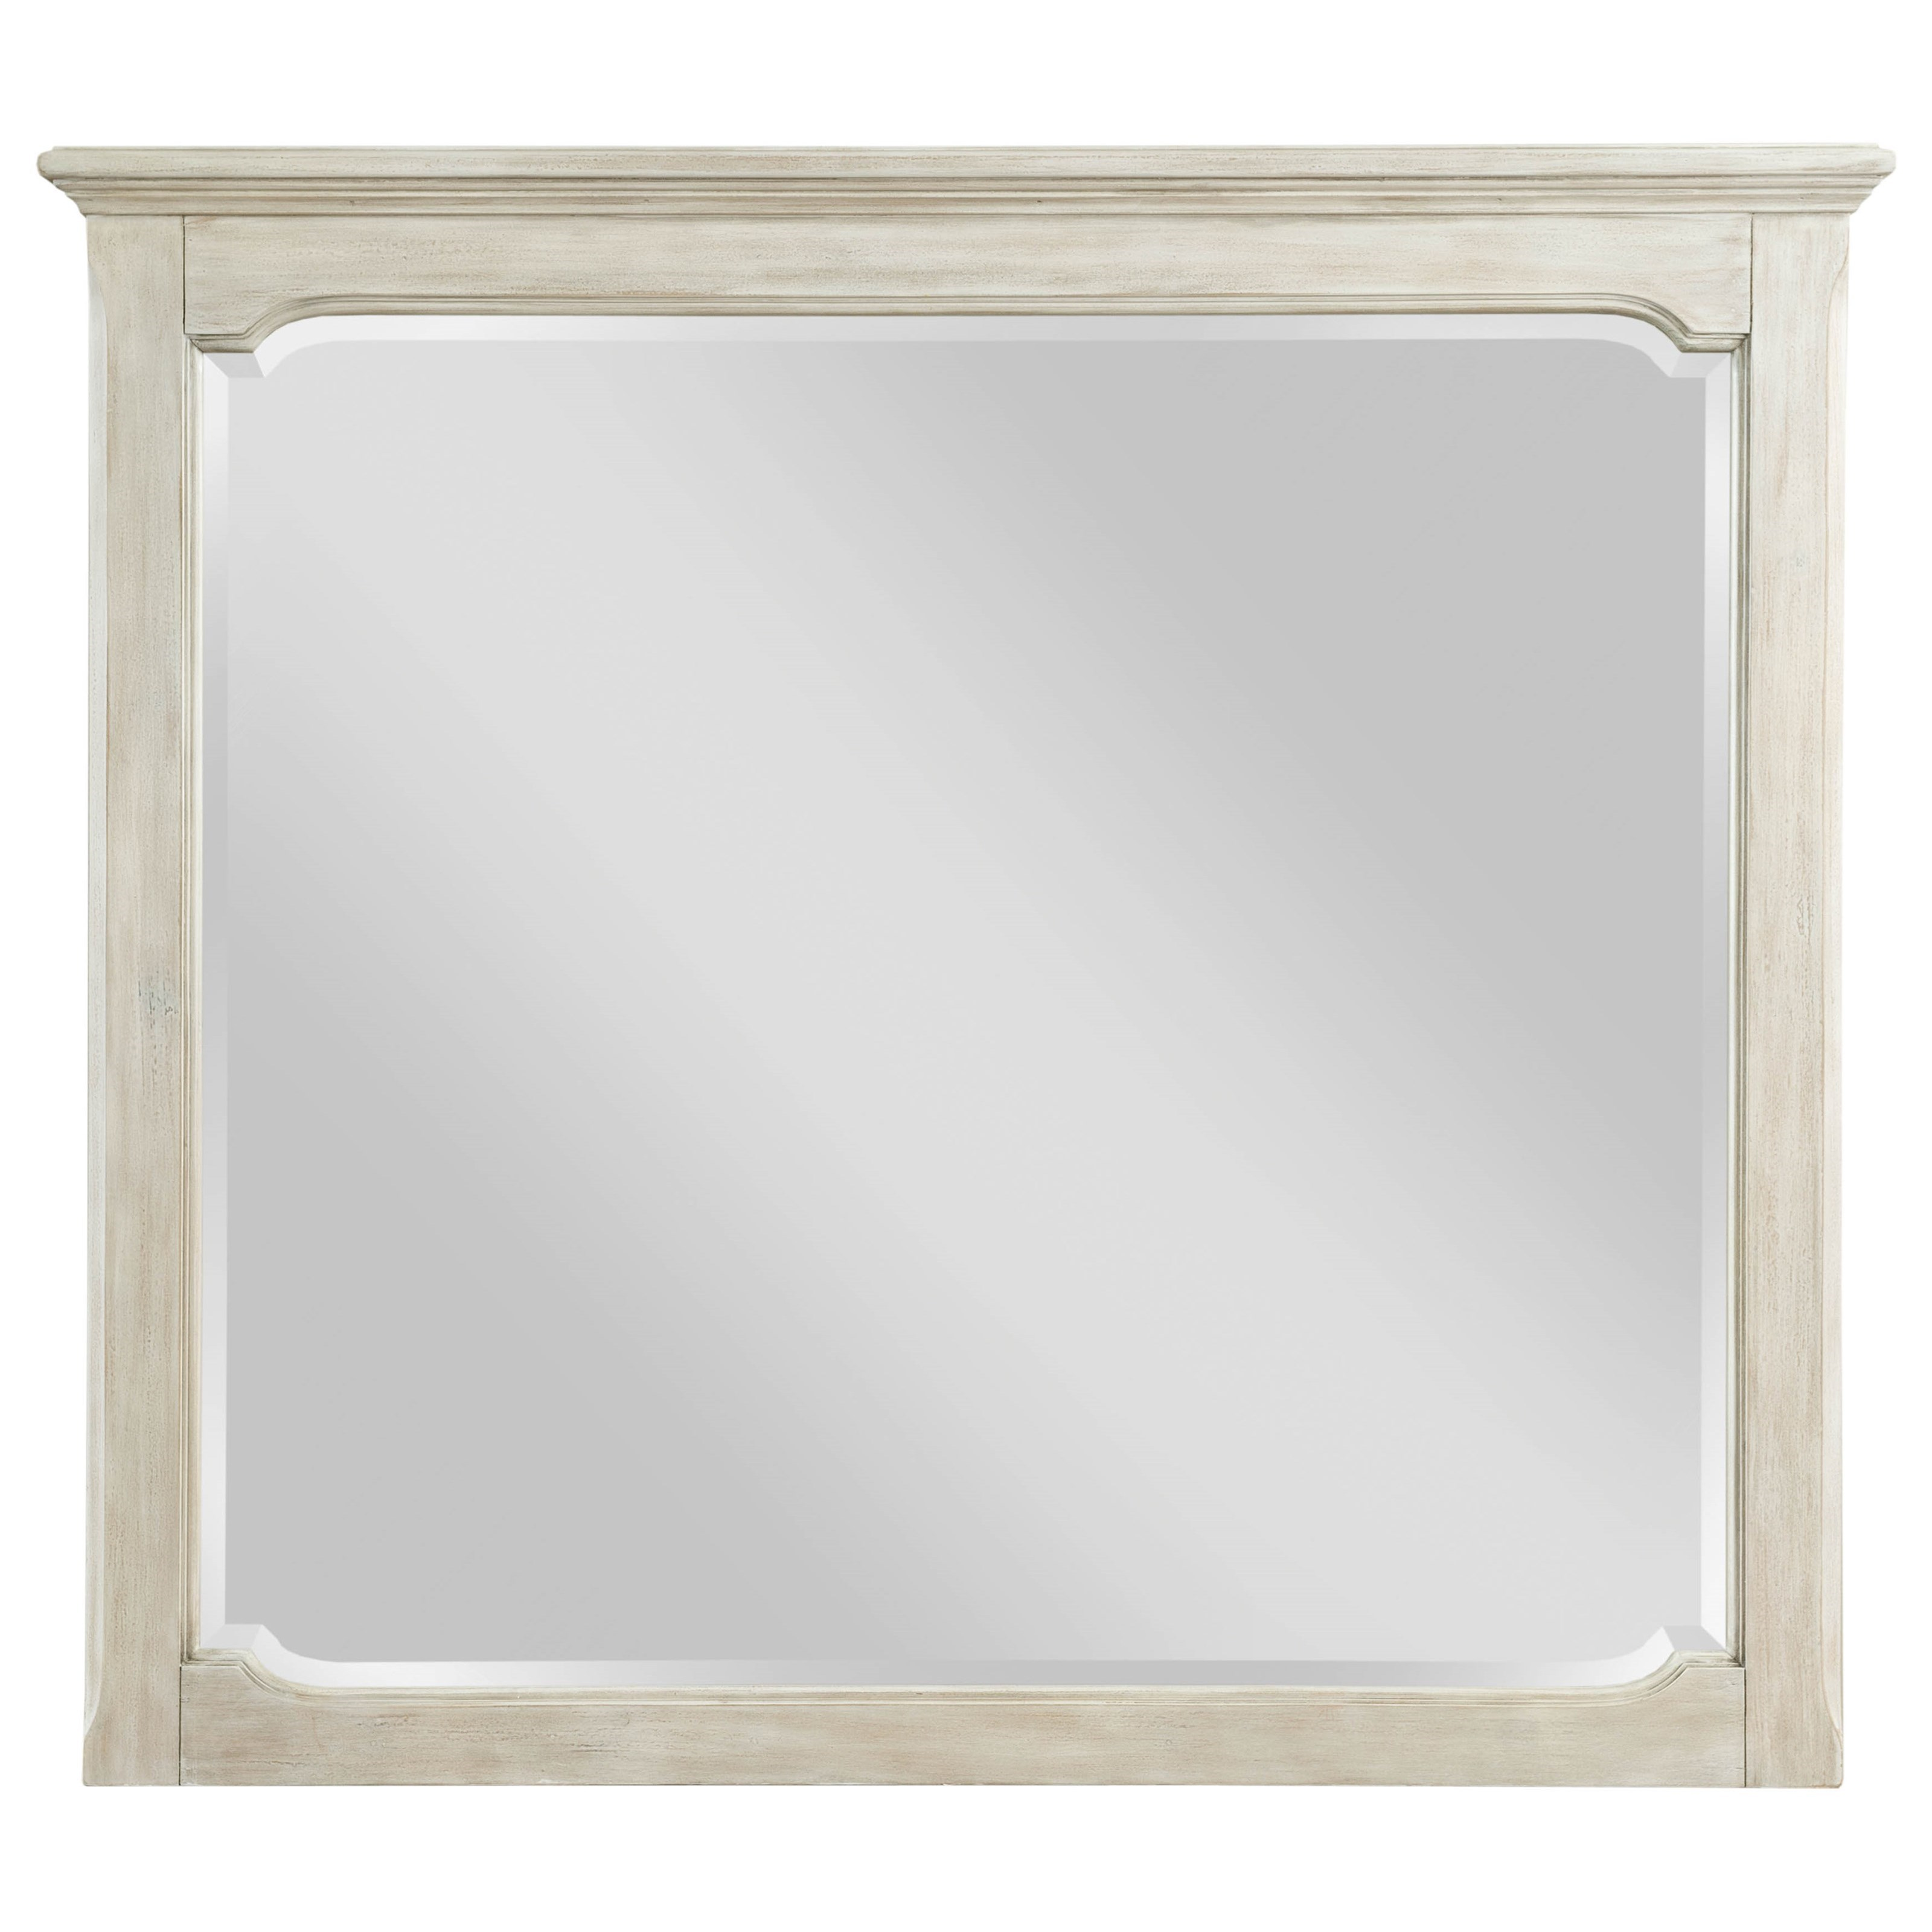 Litchfield Cotswold Landscape Mirror by American Drew at Stoney Creek Furniture